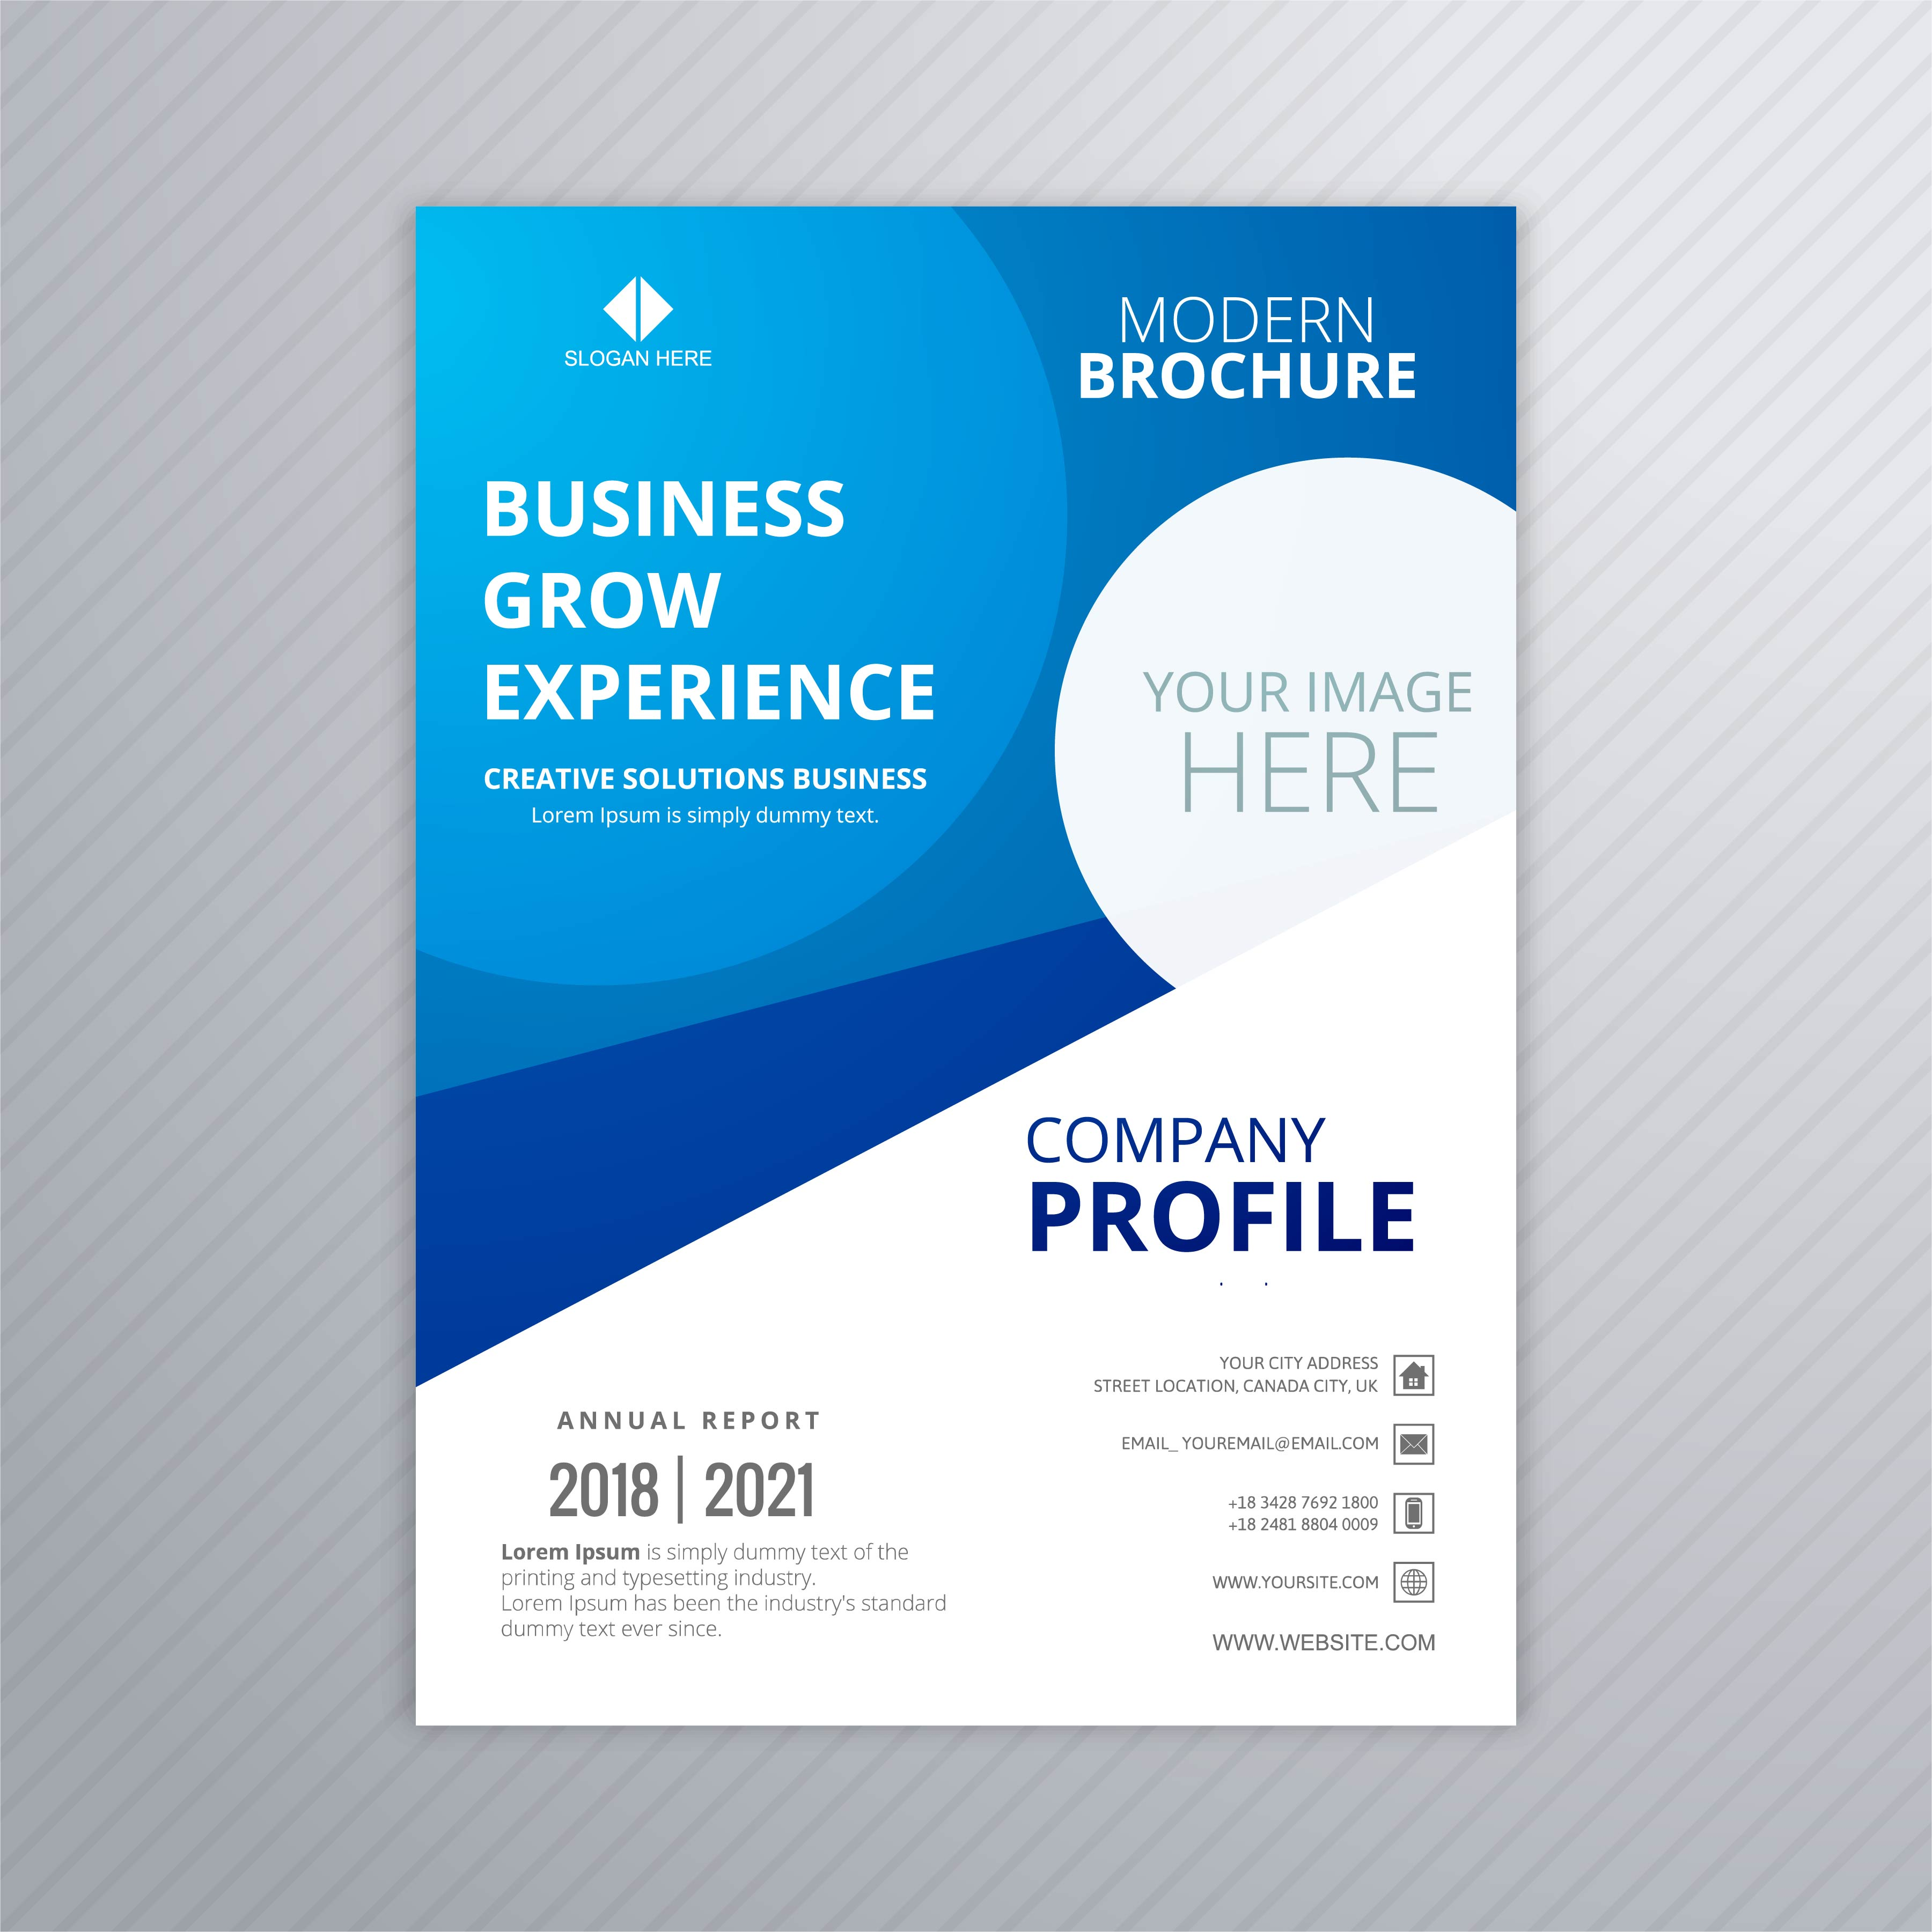 Business Professional Brochure Template Design Download Free Vector Art Stock Graphics Amp Images